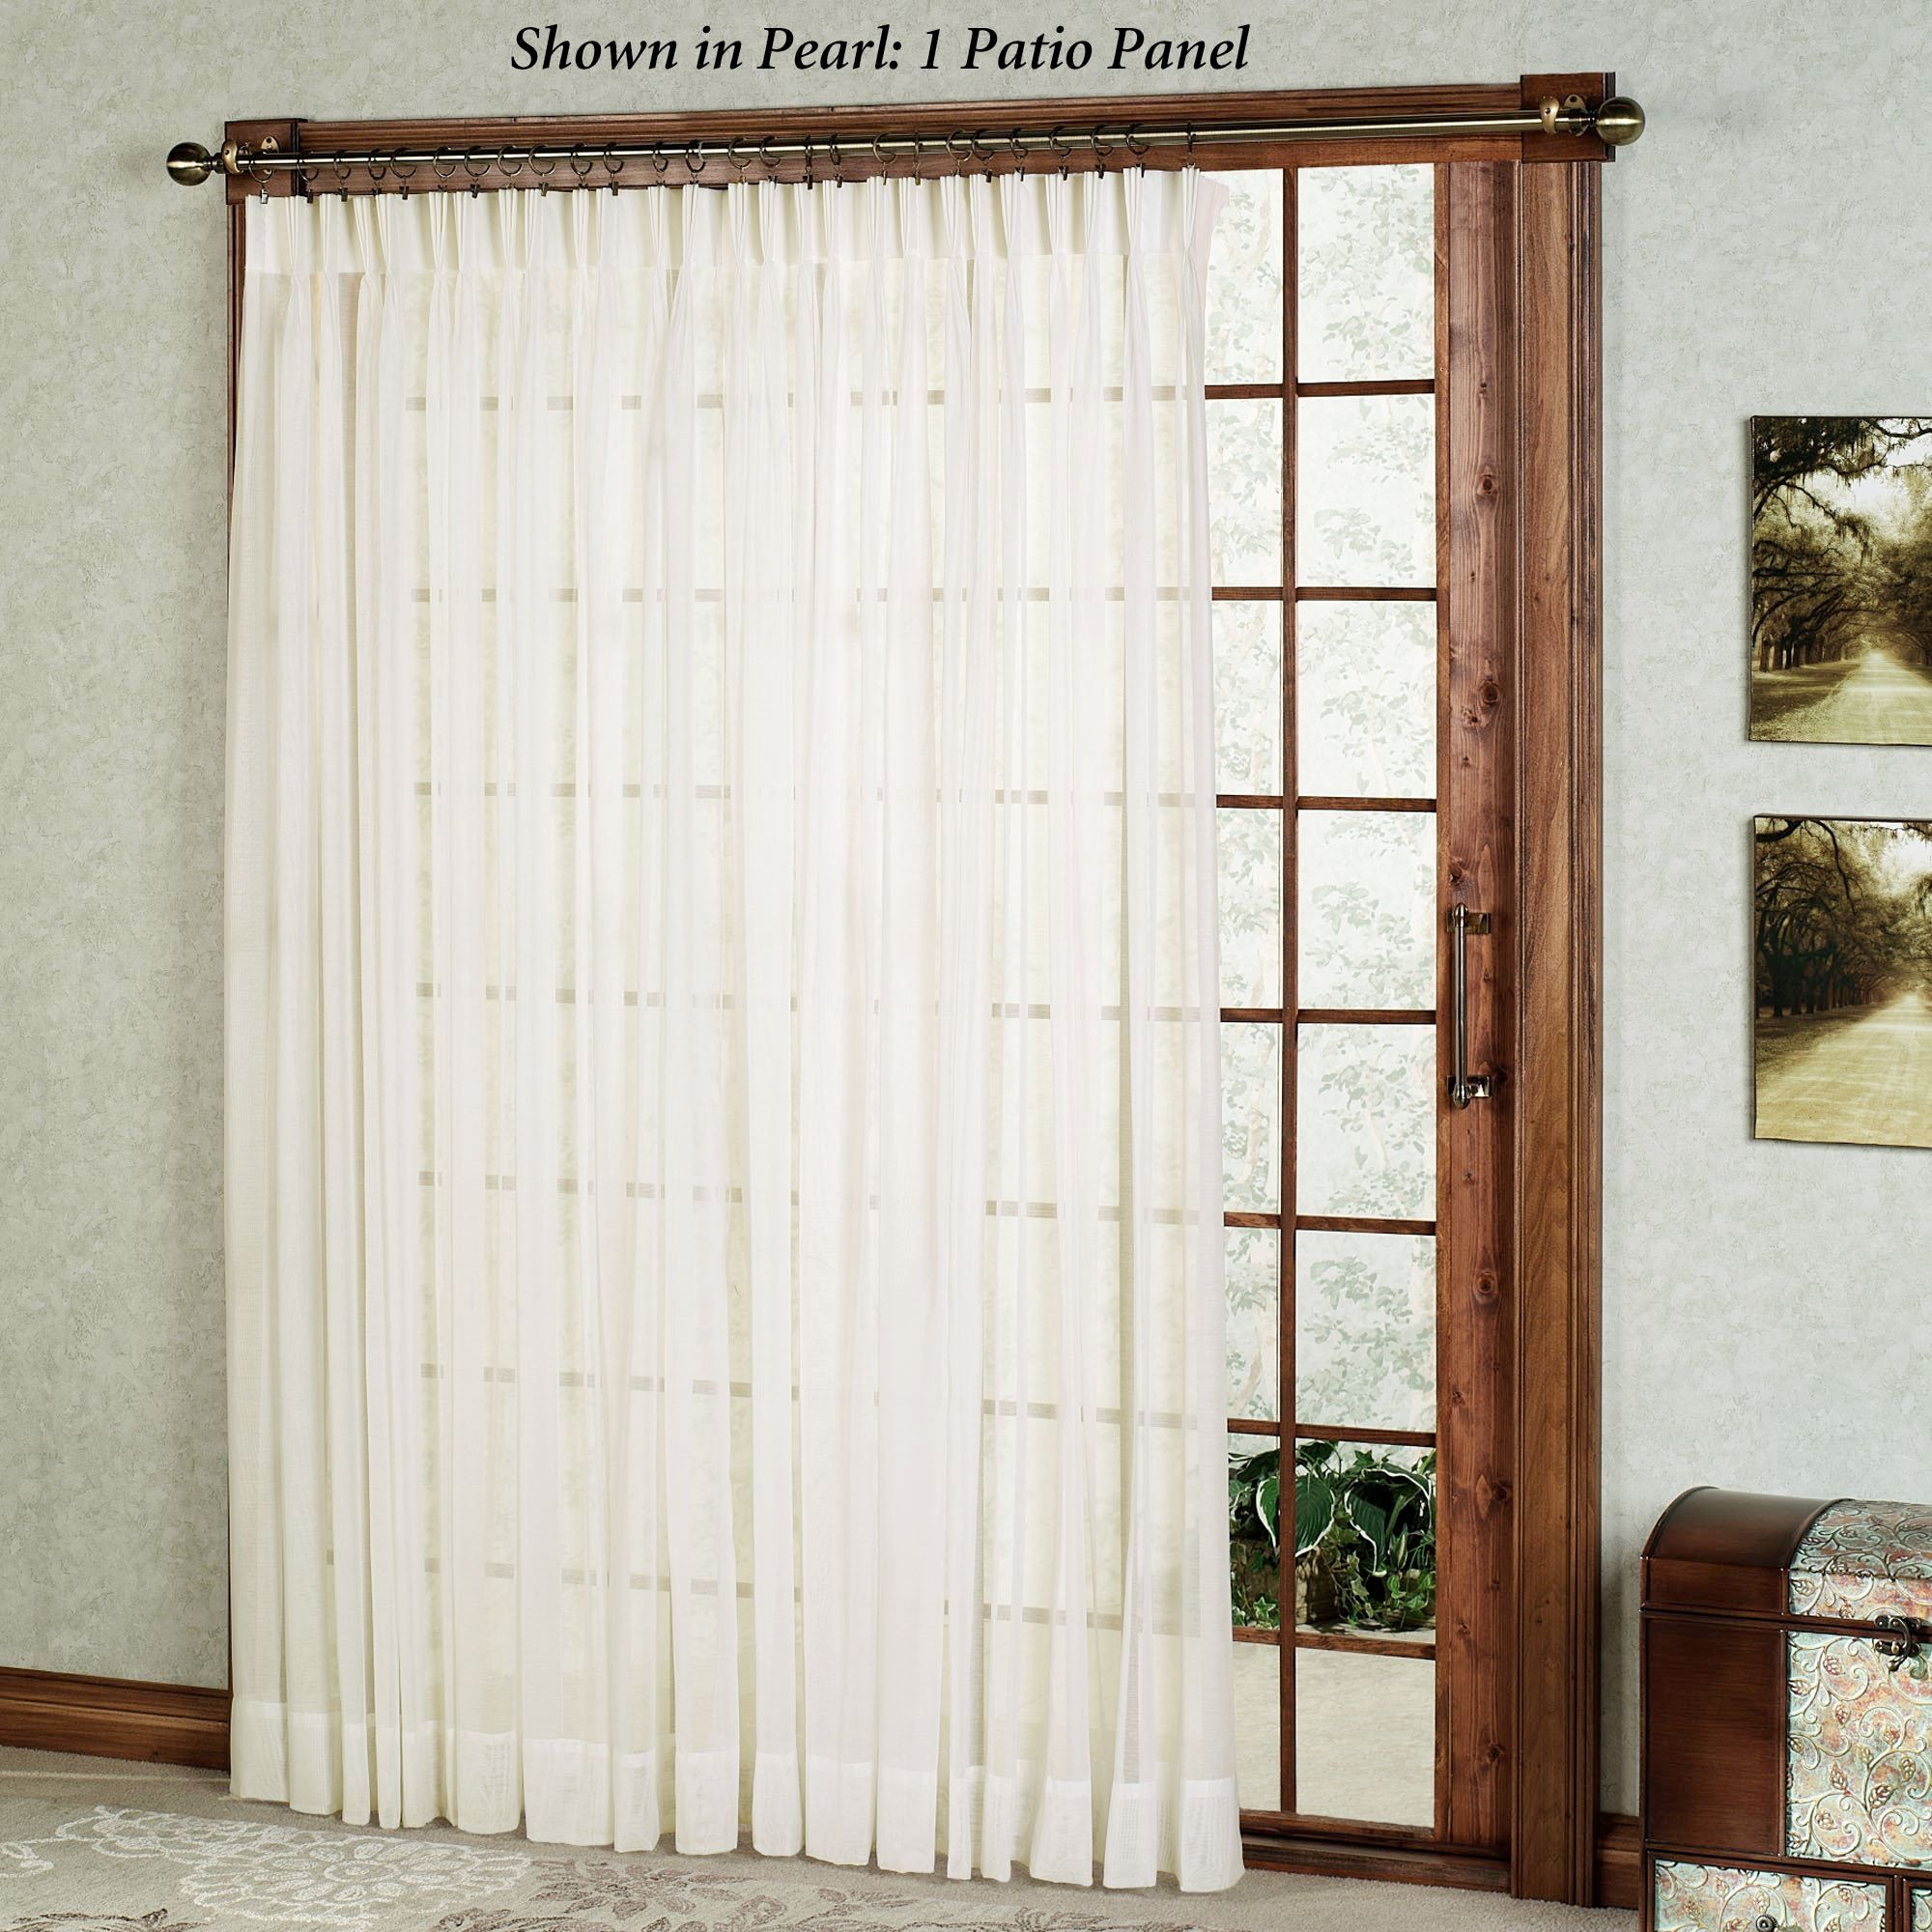 Window coverings types  patio door sheer curtain panels  bukuweb  pinterest